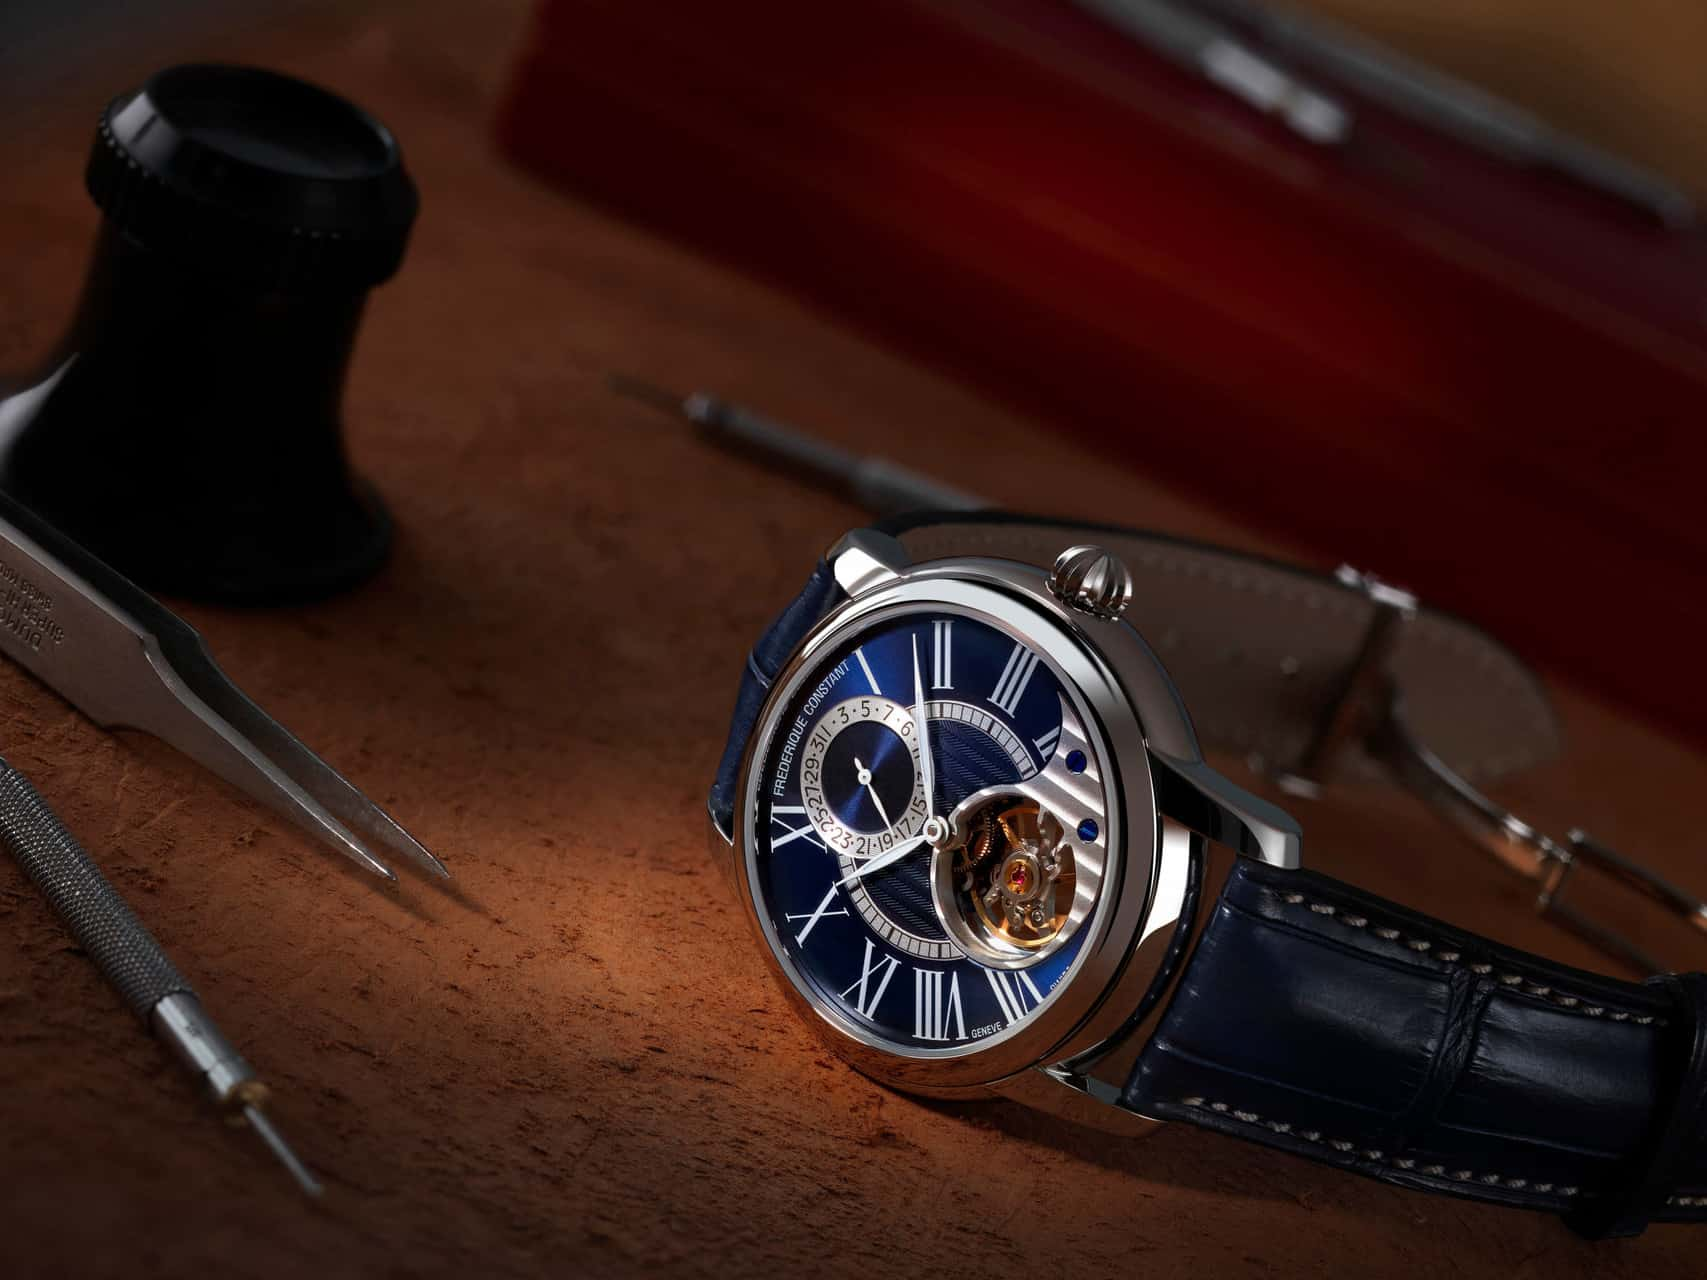 Frederique Constant introduces new  Heartbeat Manufacture timepieces